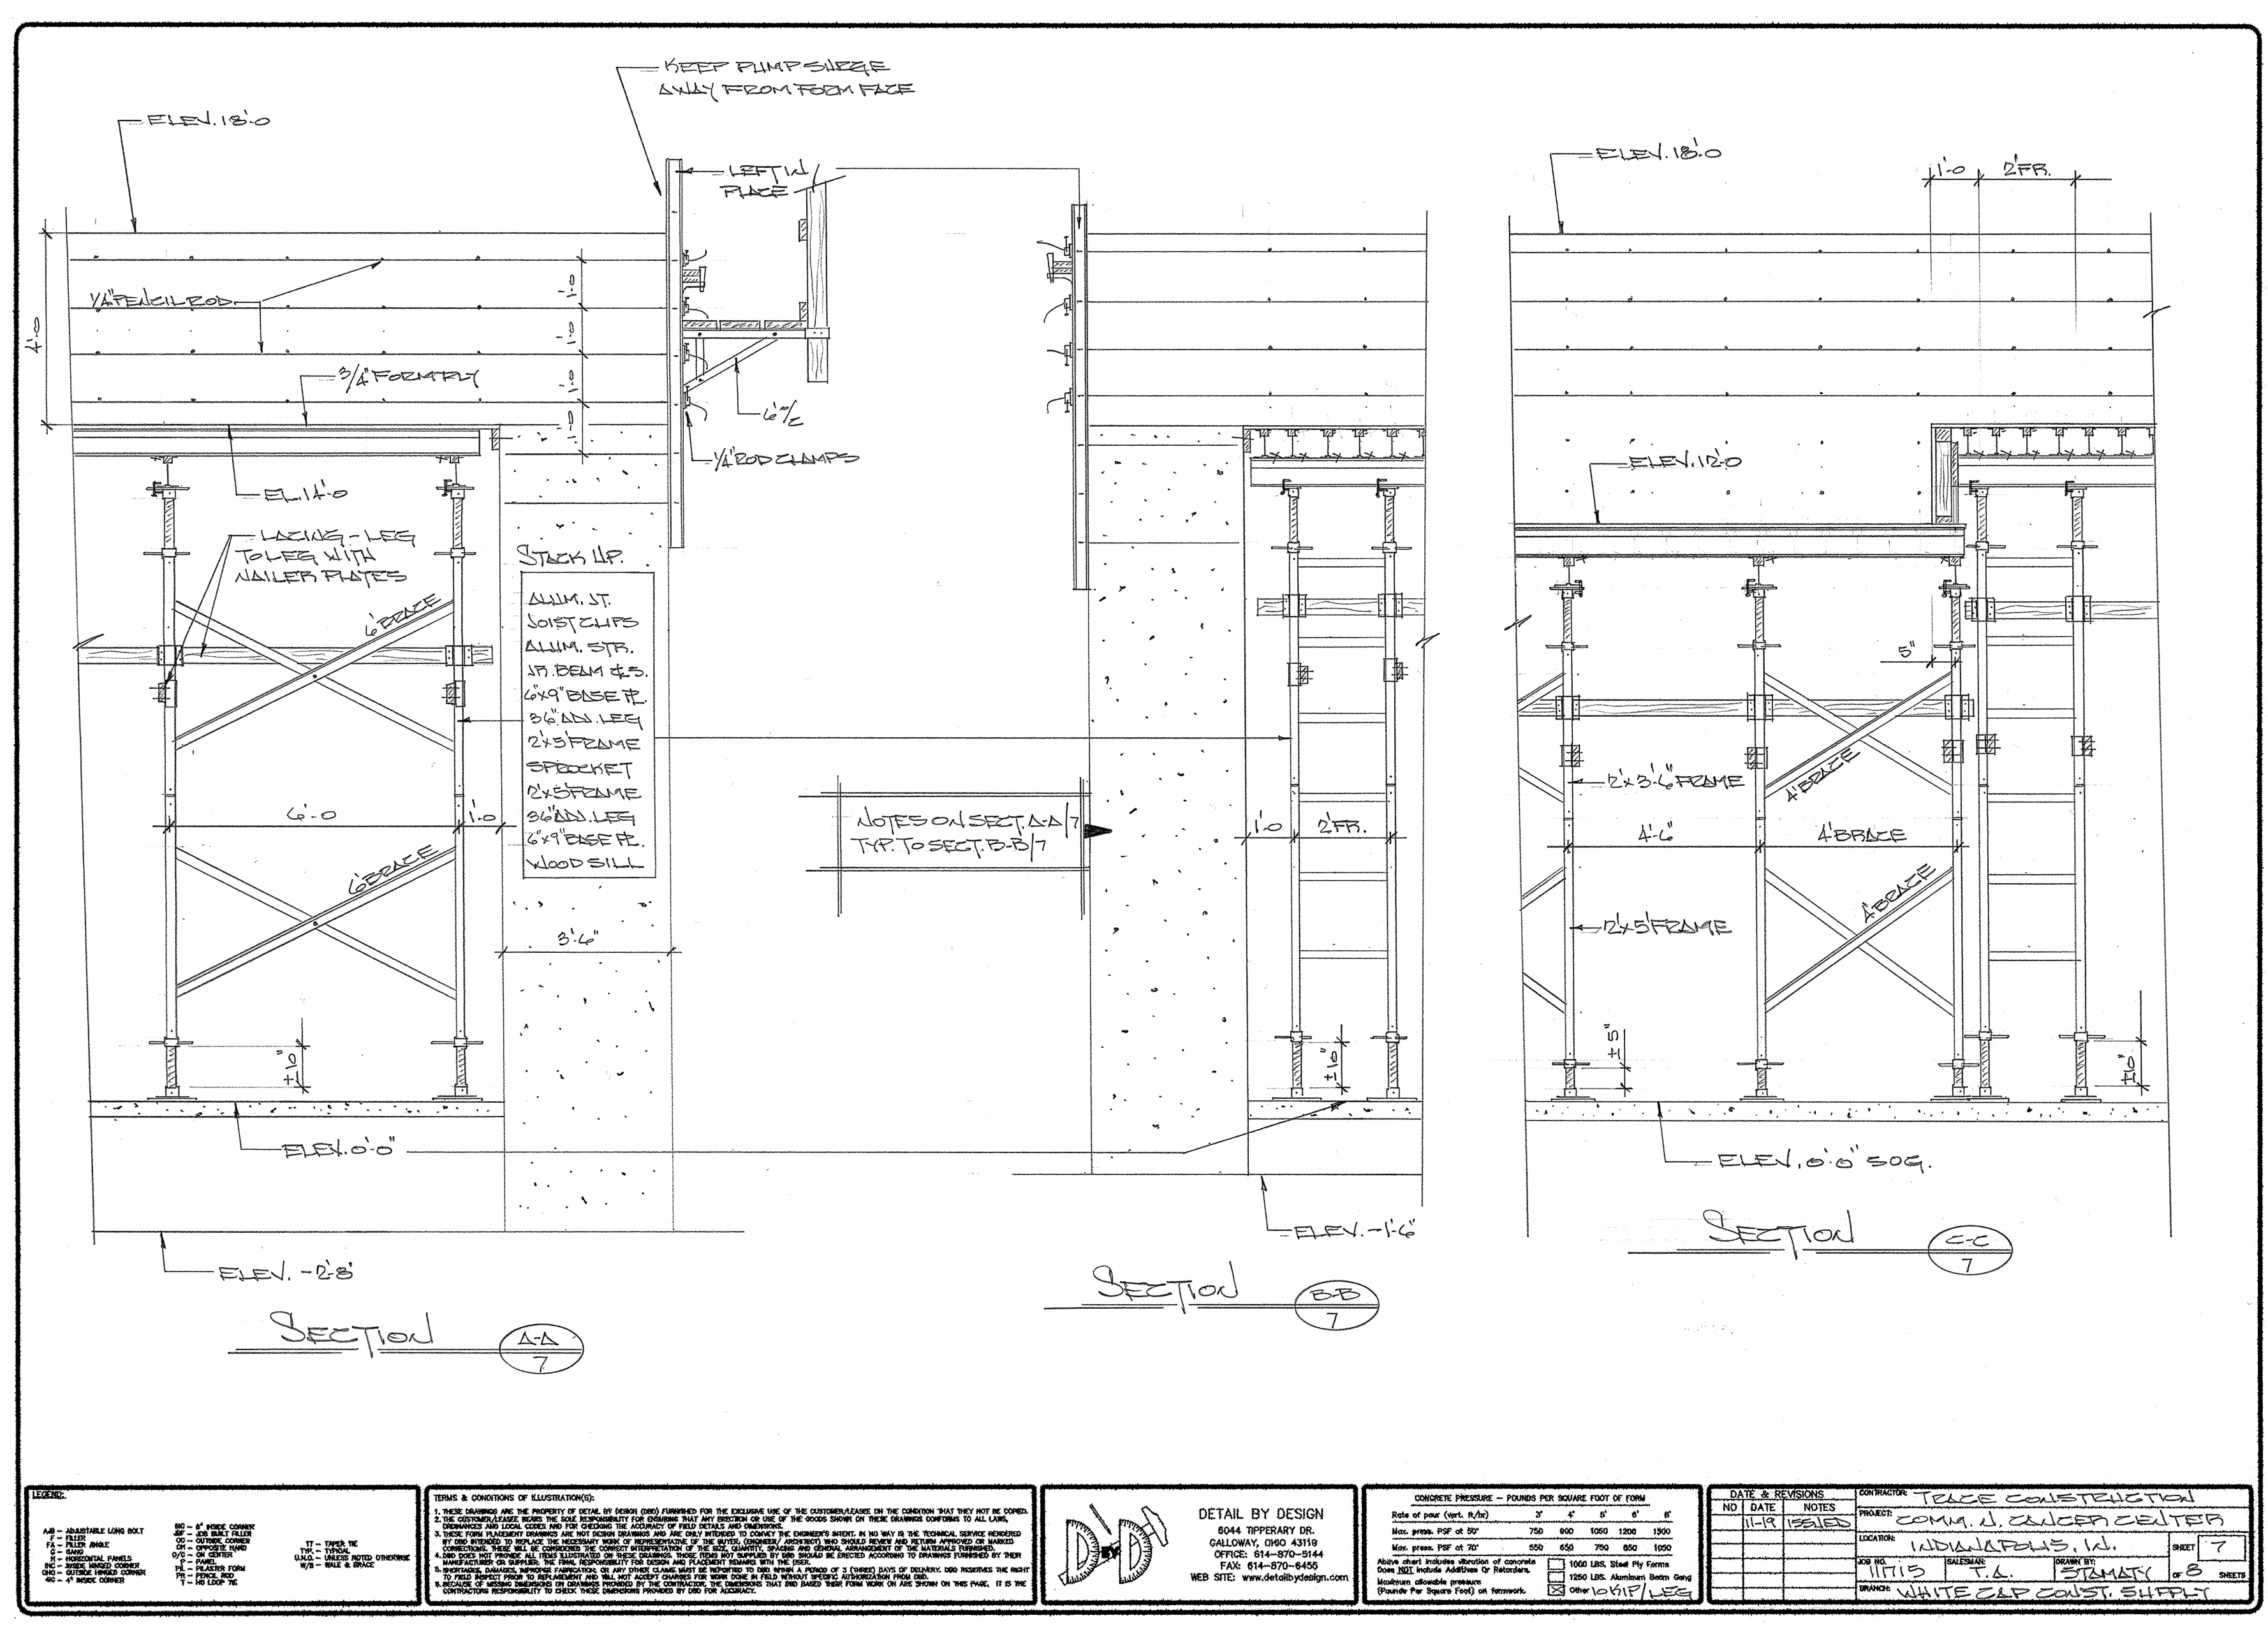 Design Of Concrete Wall Formwork : Concrete formwork design detailing detail by